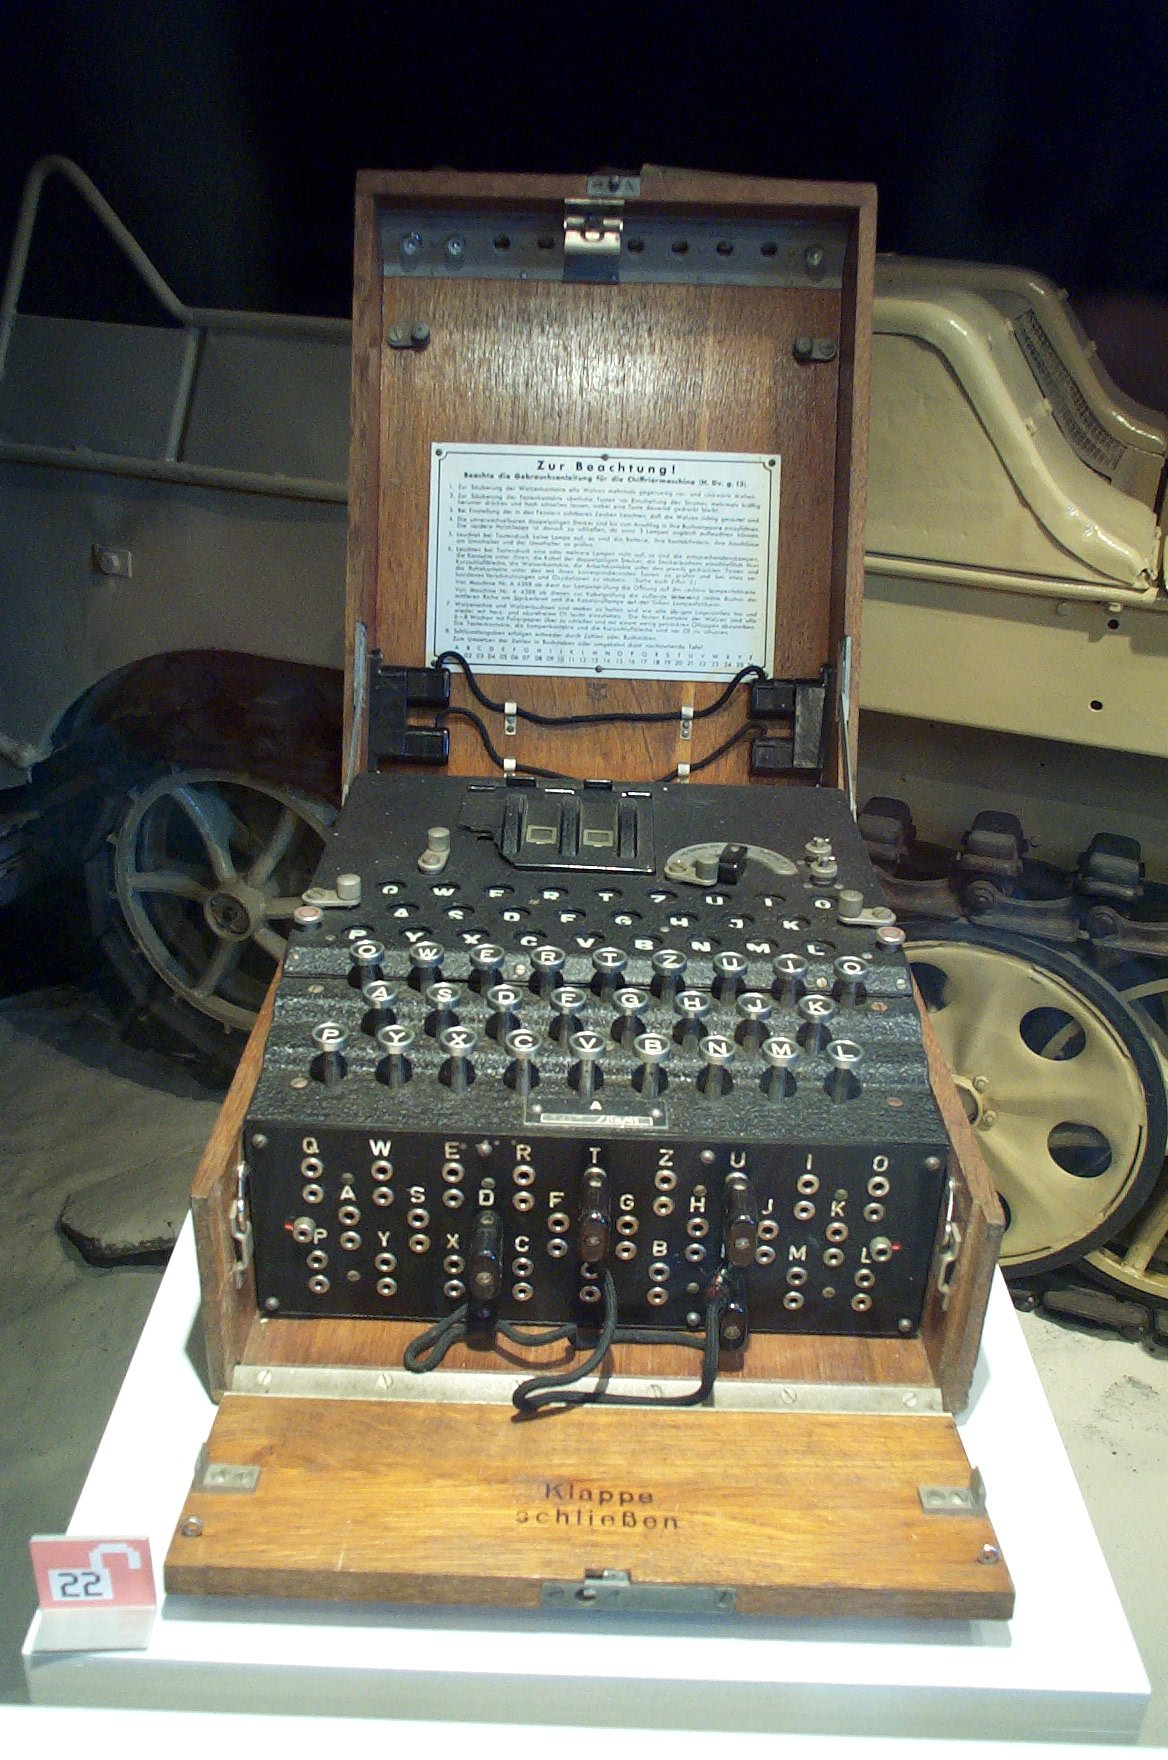 Enigma machine shown at the Swiss Transport Museum Lucerne photo Little Joe